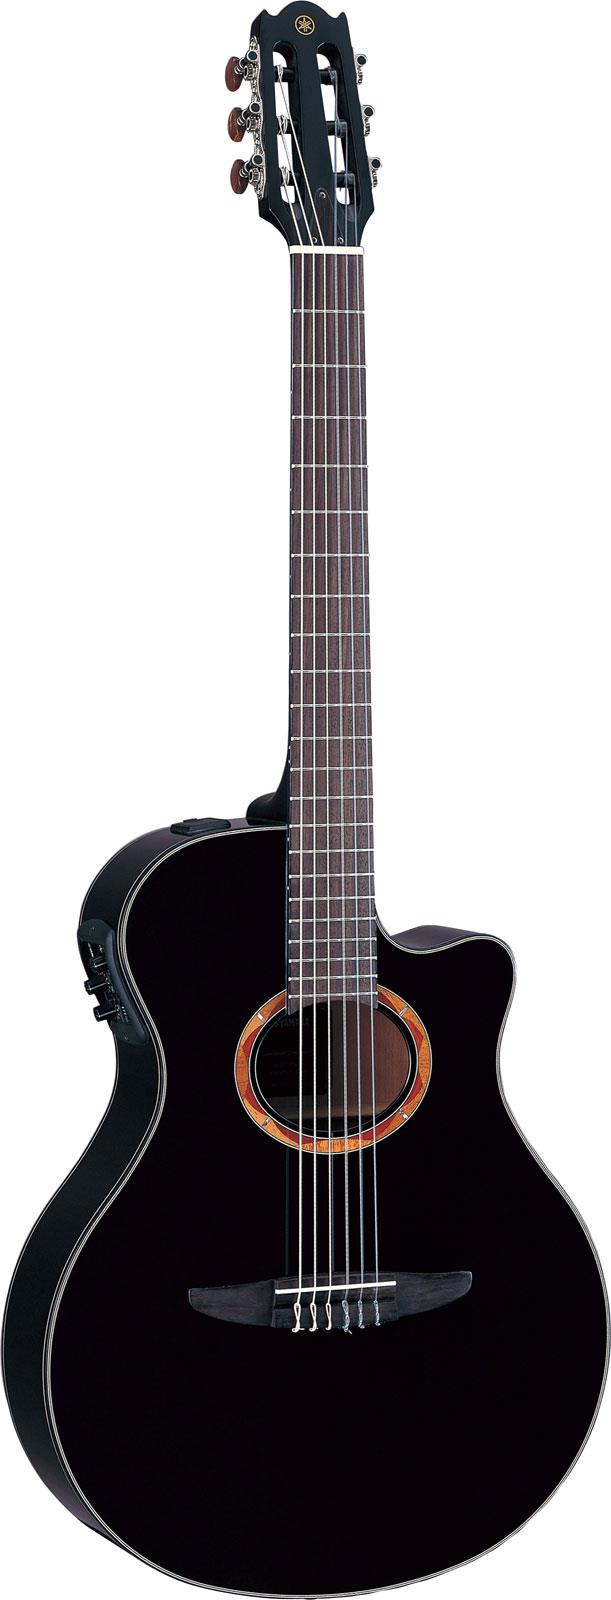 yamaha ntx700. yamaha ntx700 black classical guitar with electronics ntx700 r